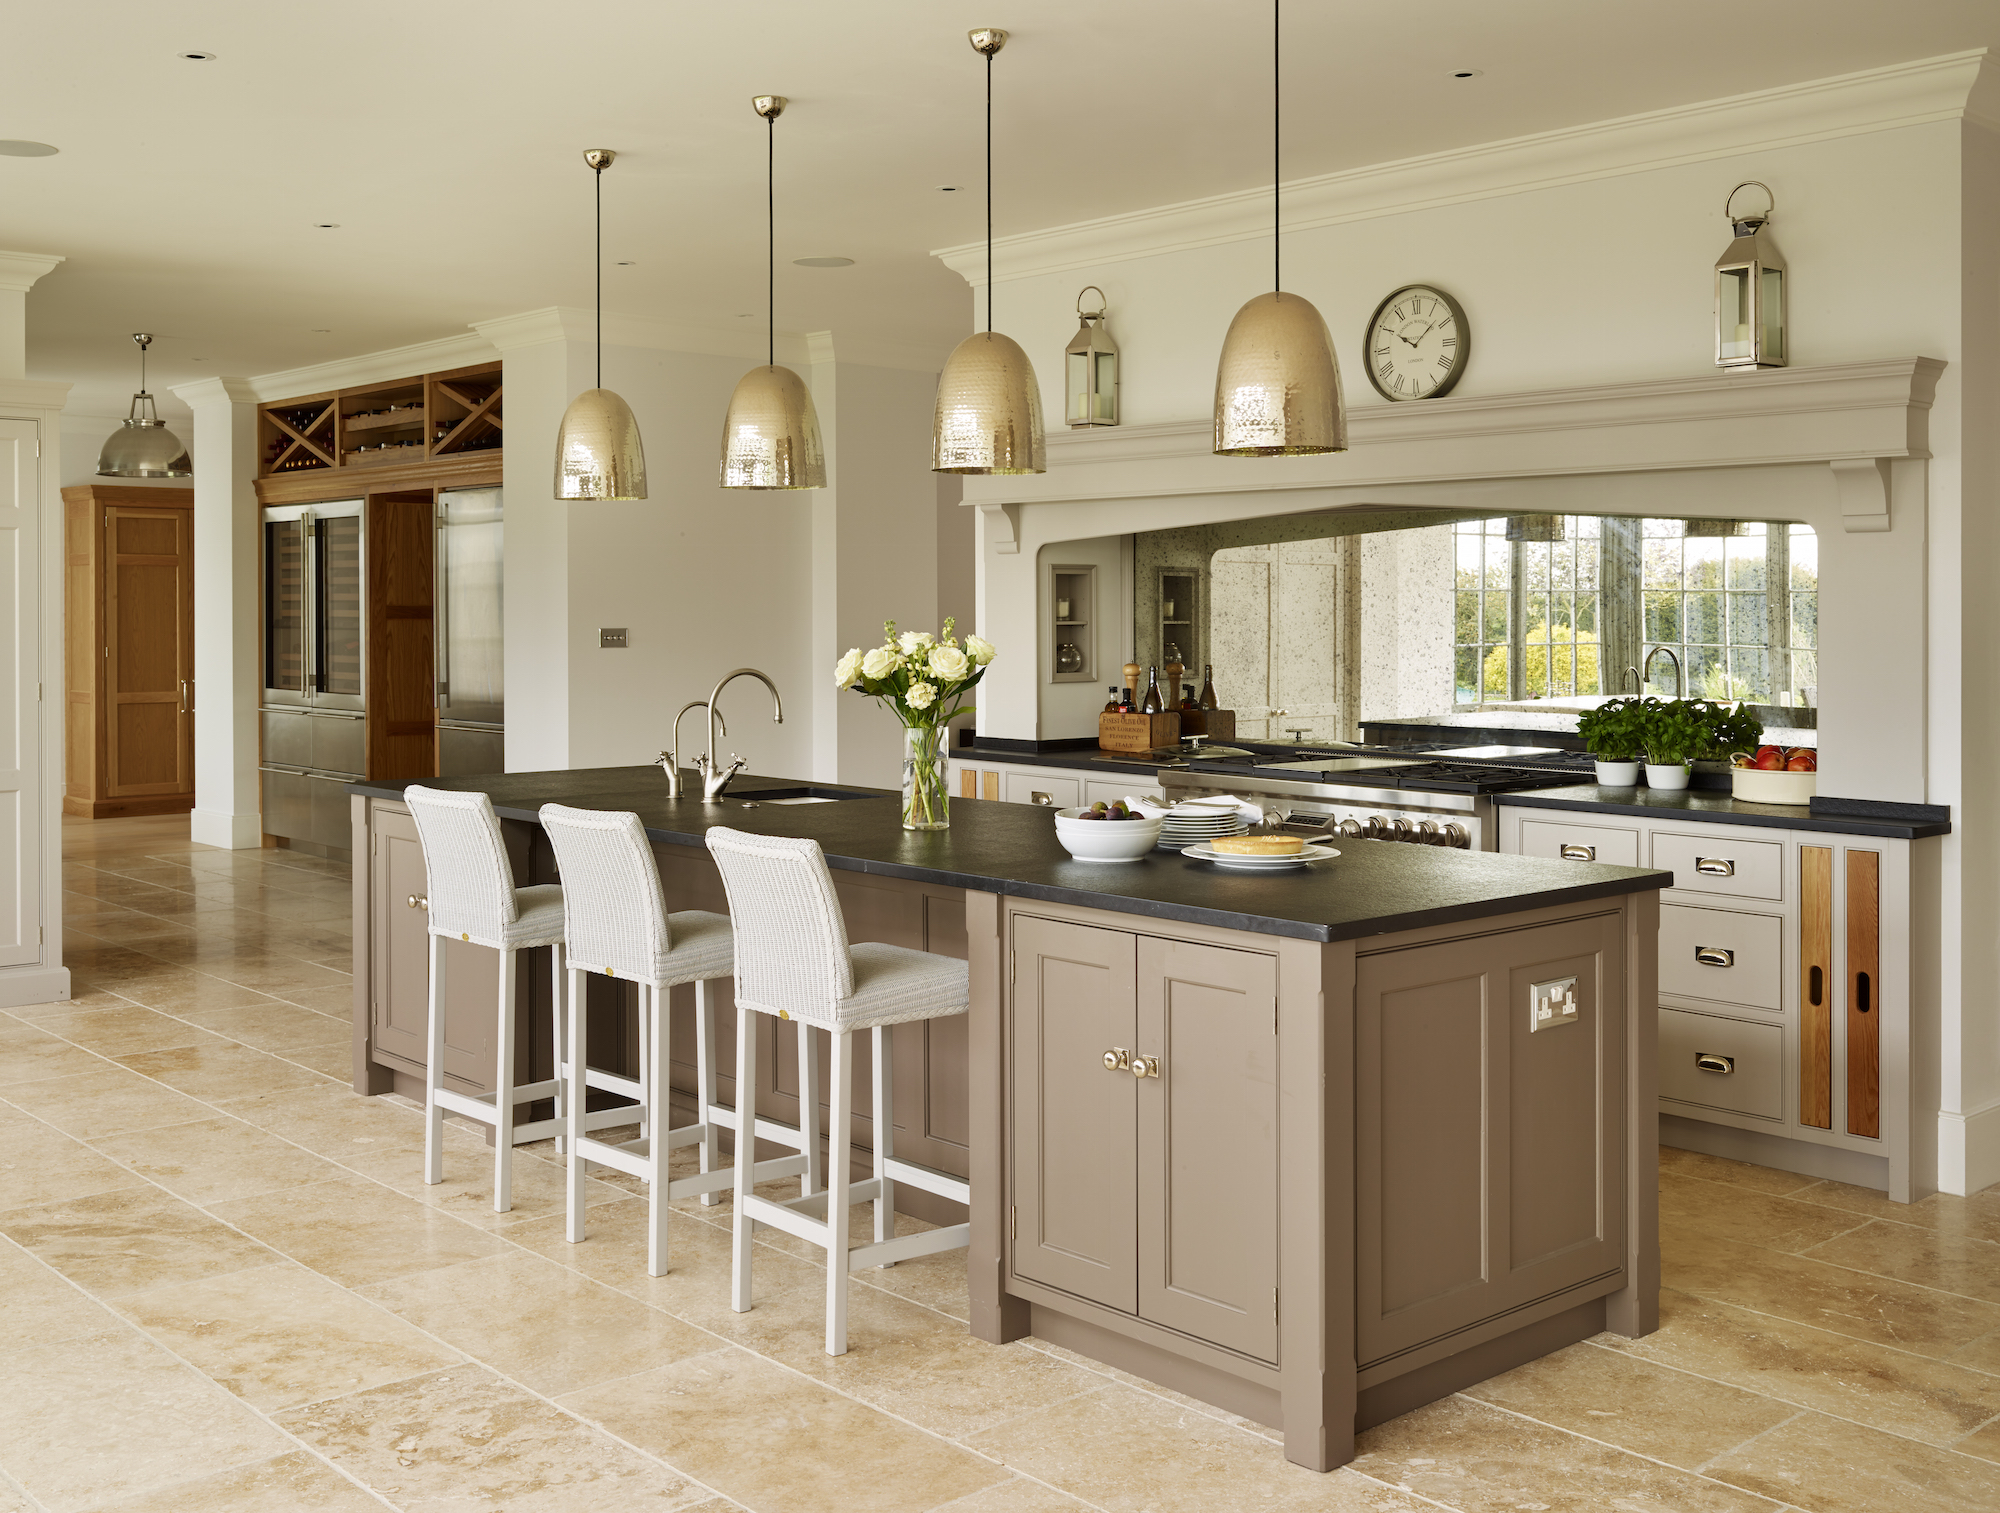 Natural Heart Your Home Classic Kitchen Classic Kitchen Designs Classic Kitchen Design Ideas Kitchen Design Ideas kitchen Classic Modern Kitchens